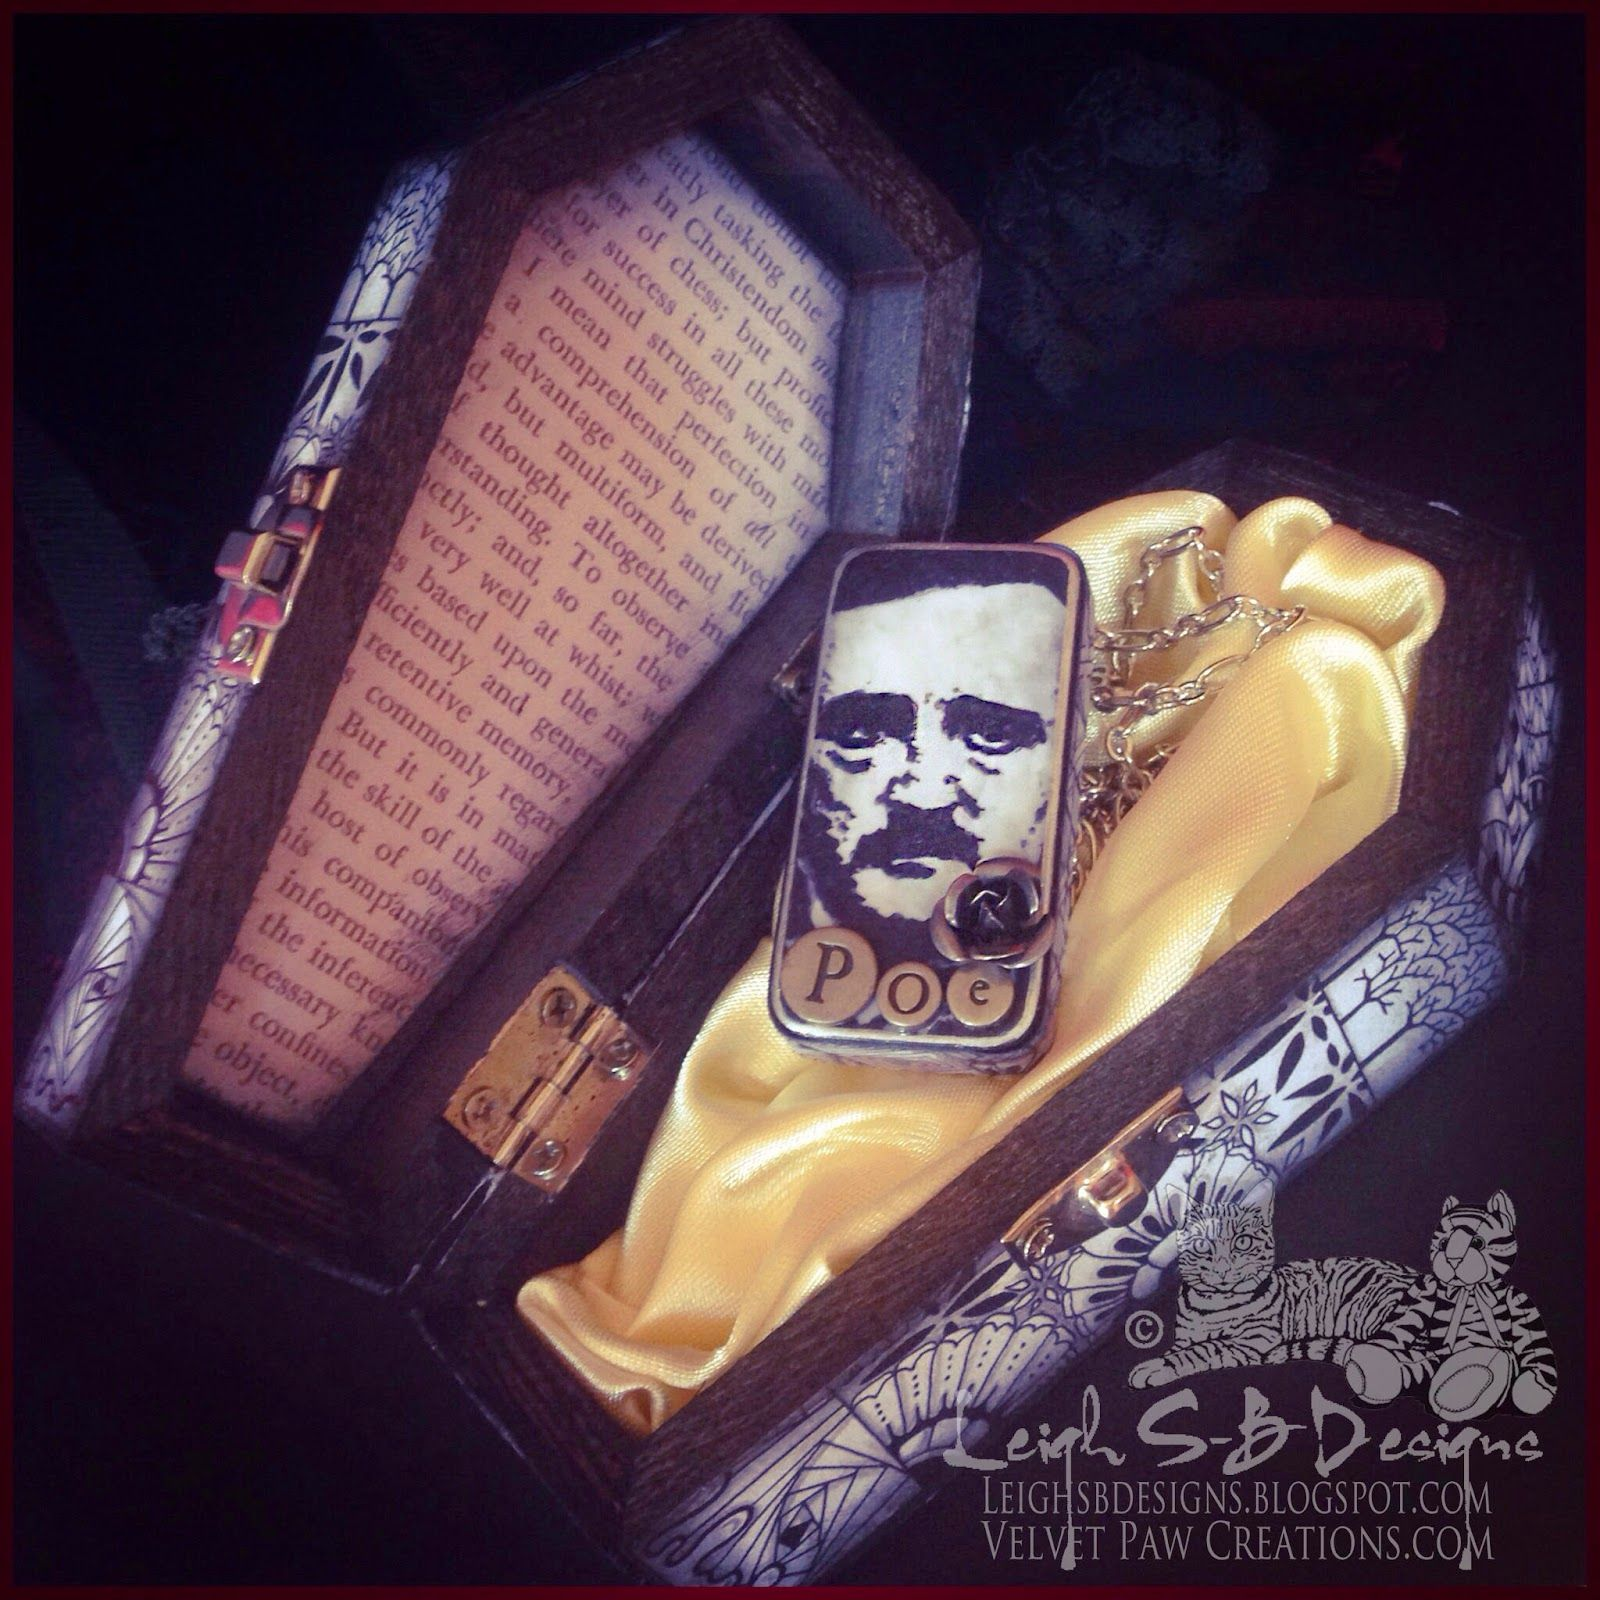 DominoART: Day 10: A Tribute to Poe + Introducing Rubber Stamps by Leigh S-B aka The Sharpie Domino Queen!